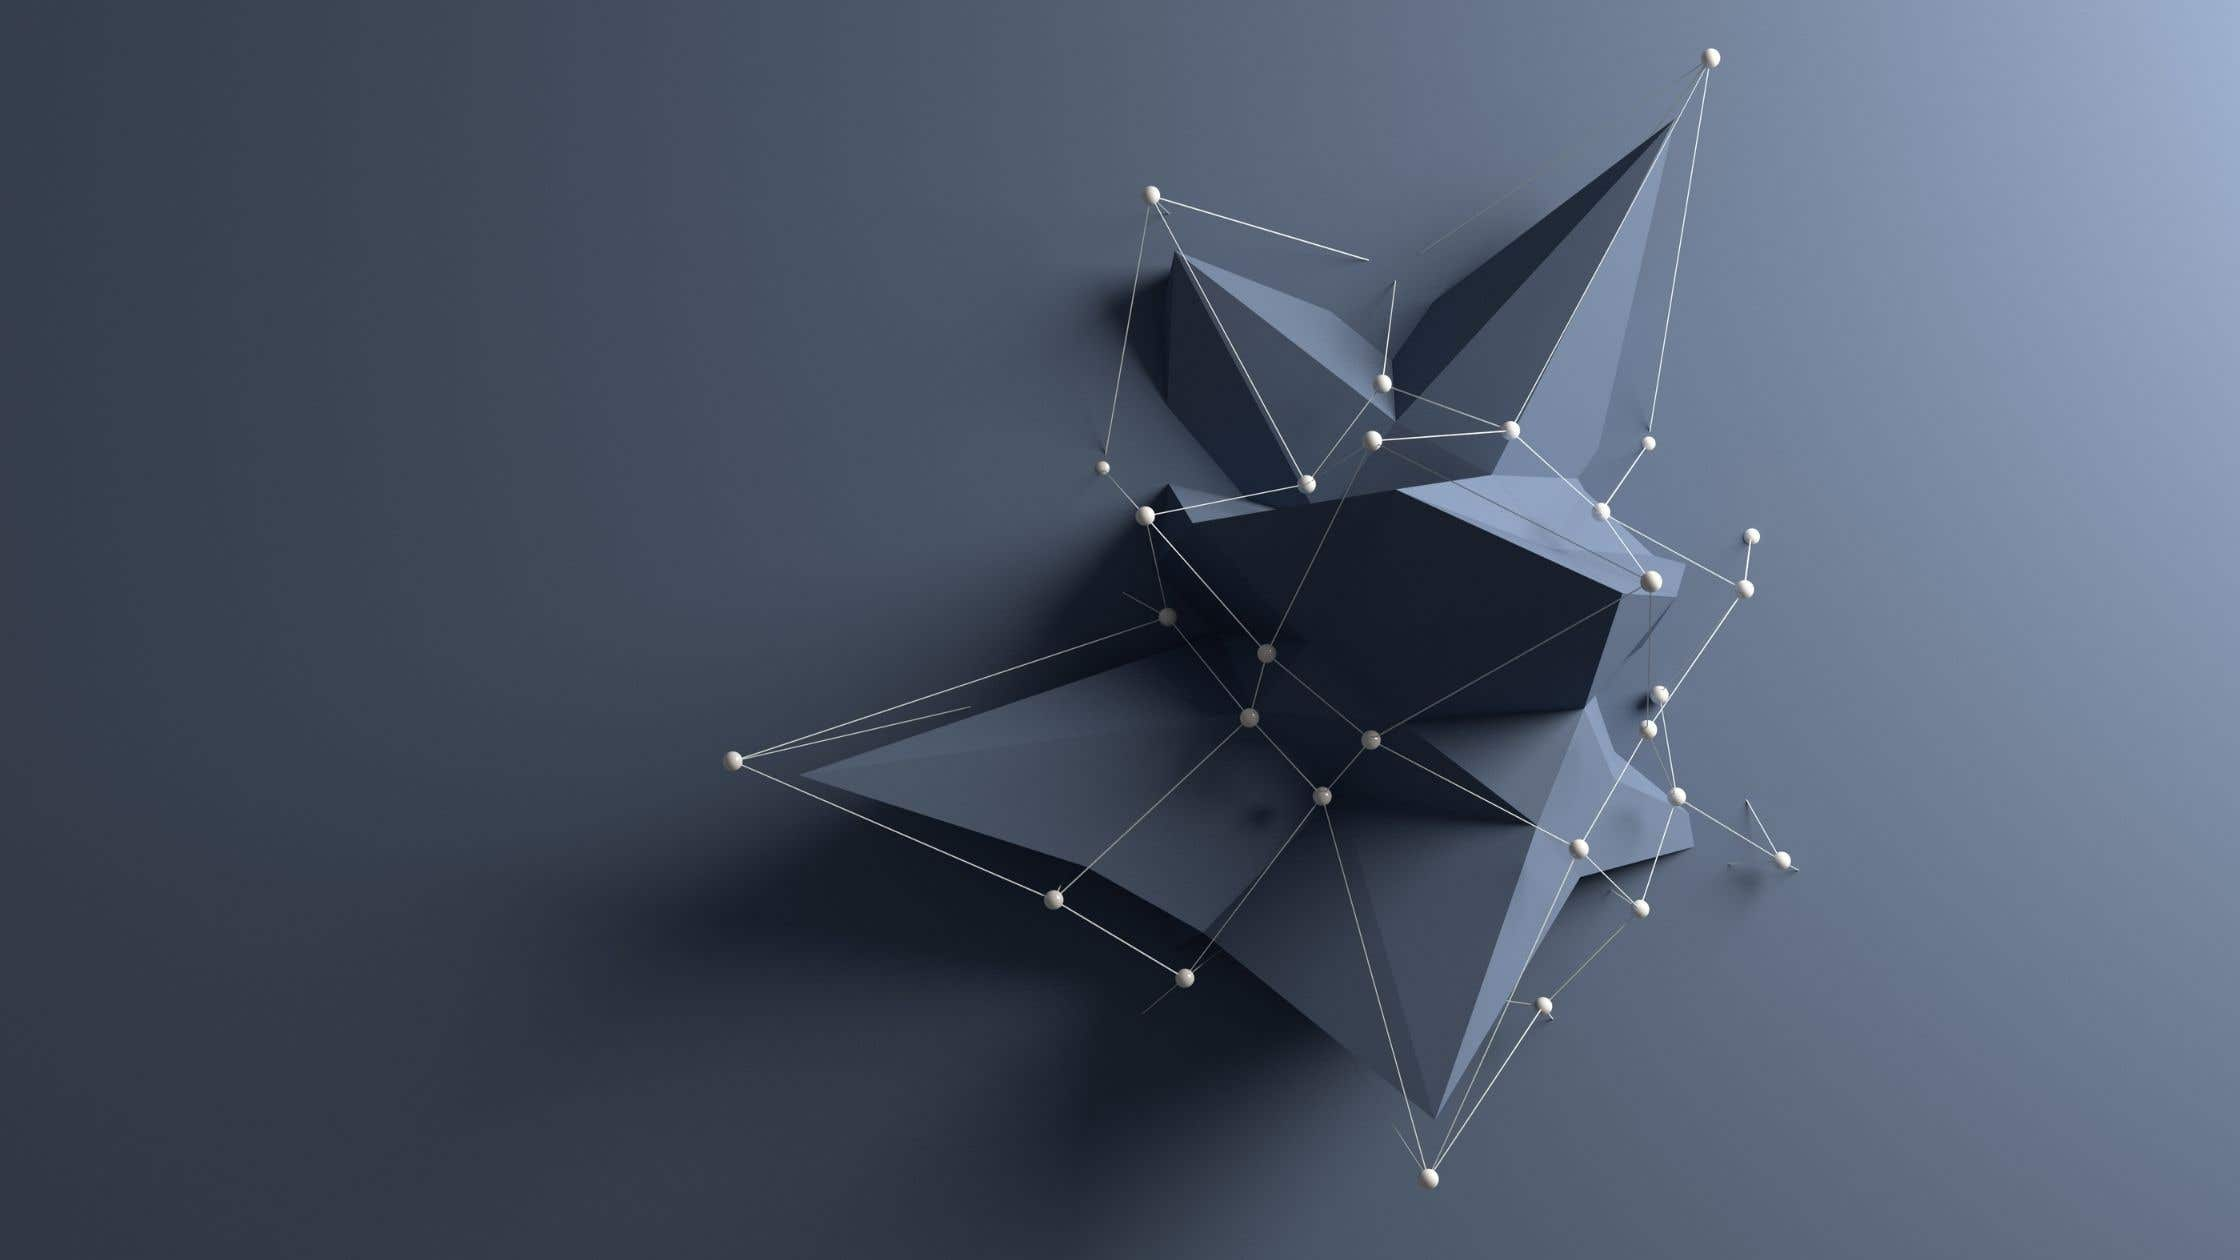 low poly art with dark grey shapes